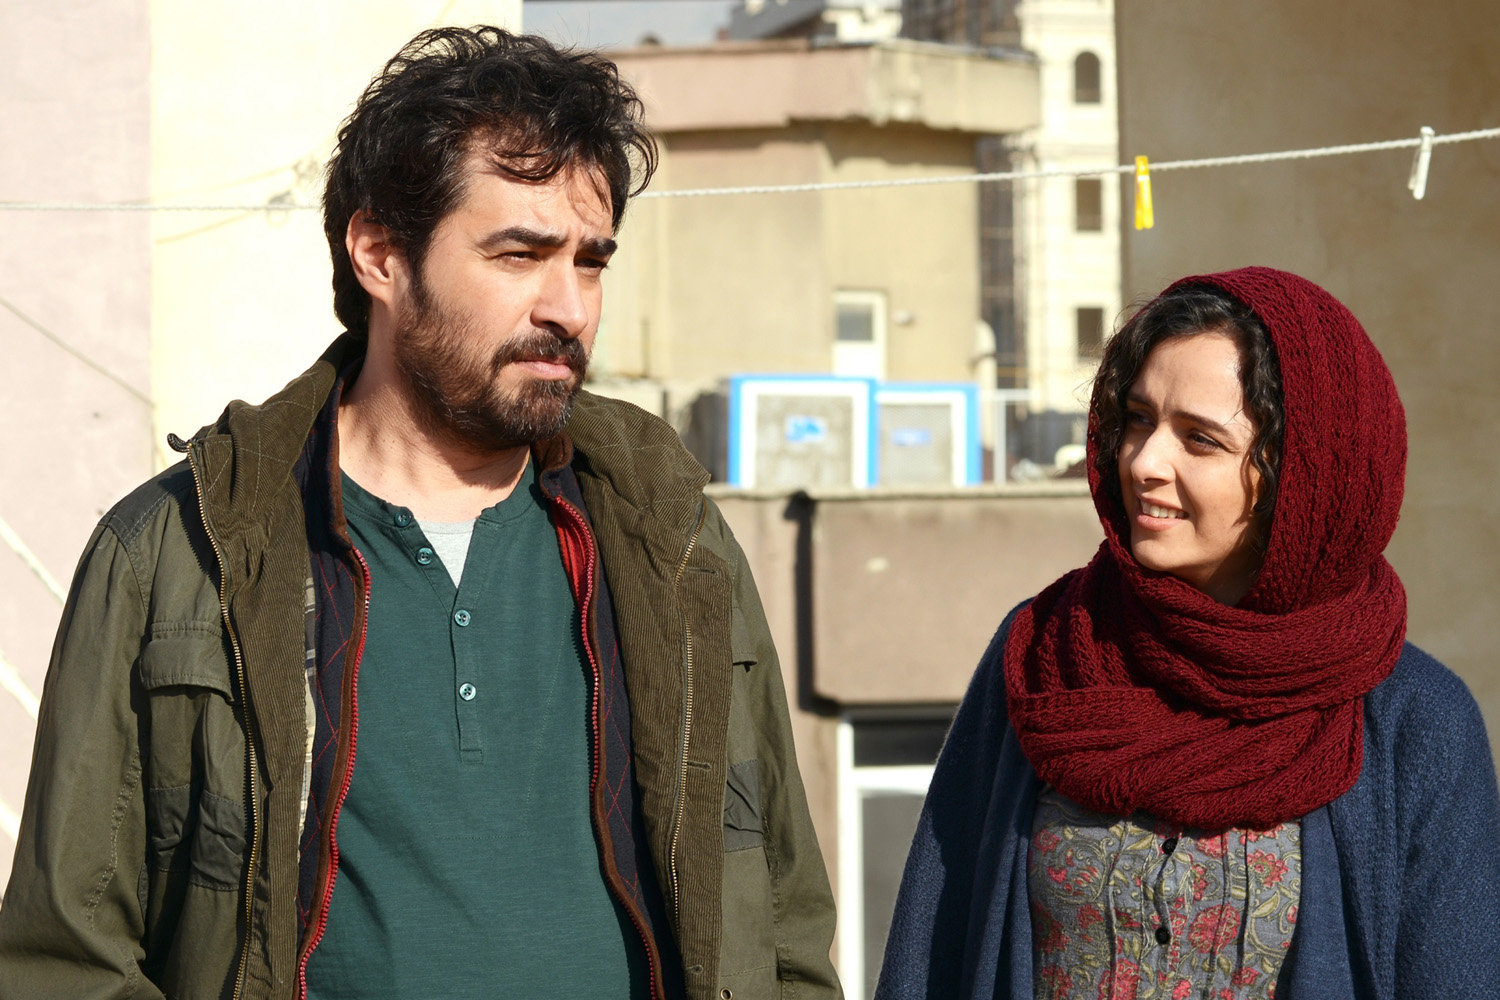 Shahab Hosseini en Taraneh Alidoosti in The Salesman